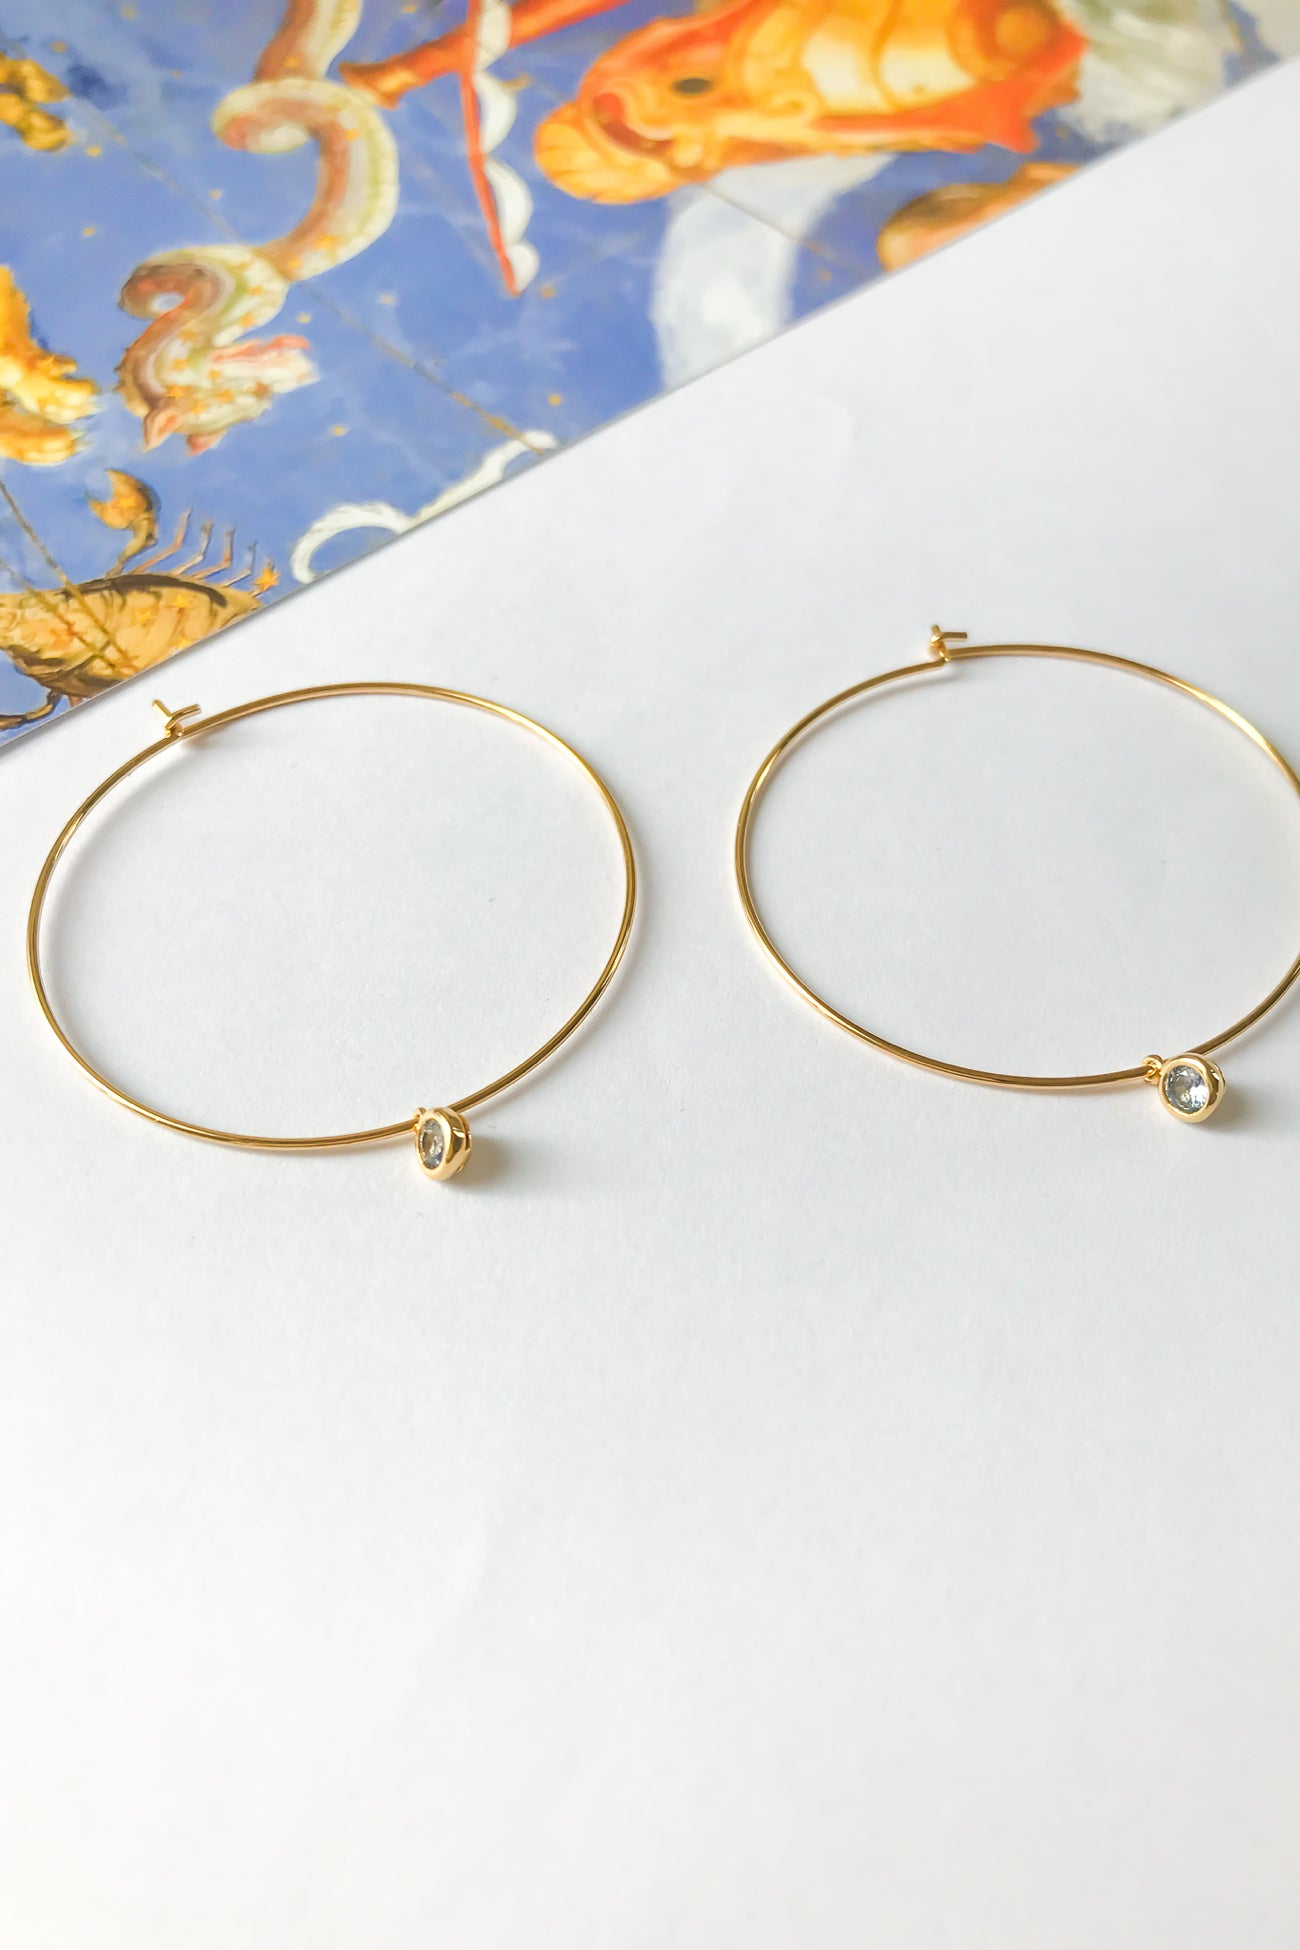 Birthstone mega hoop earrings